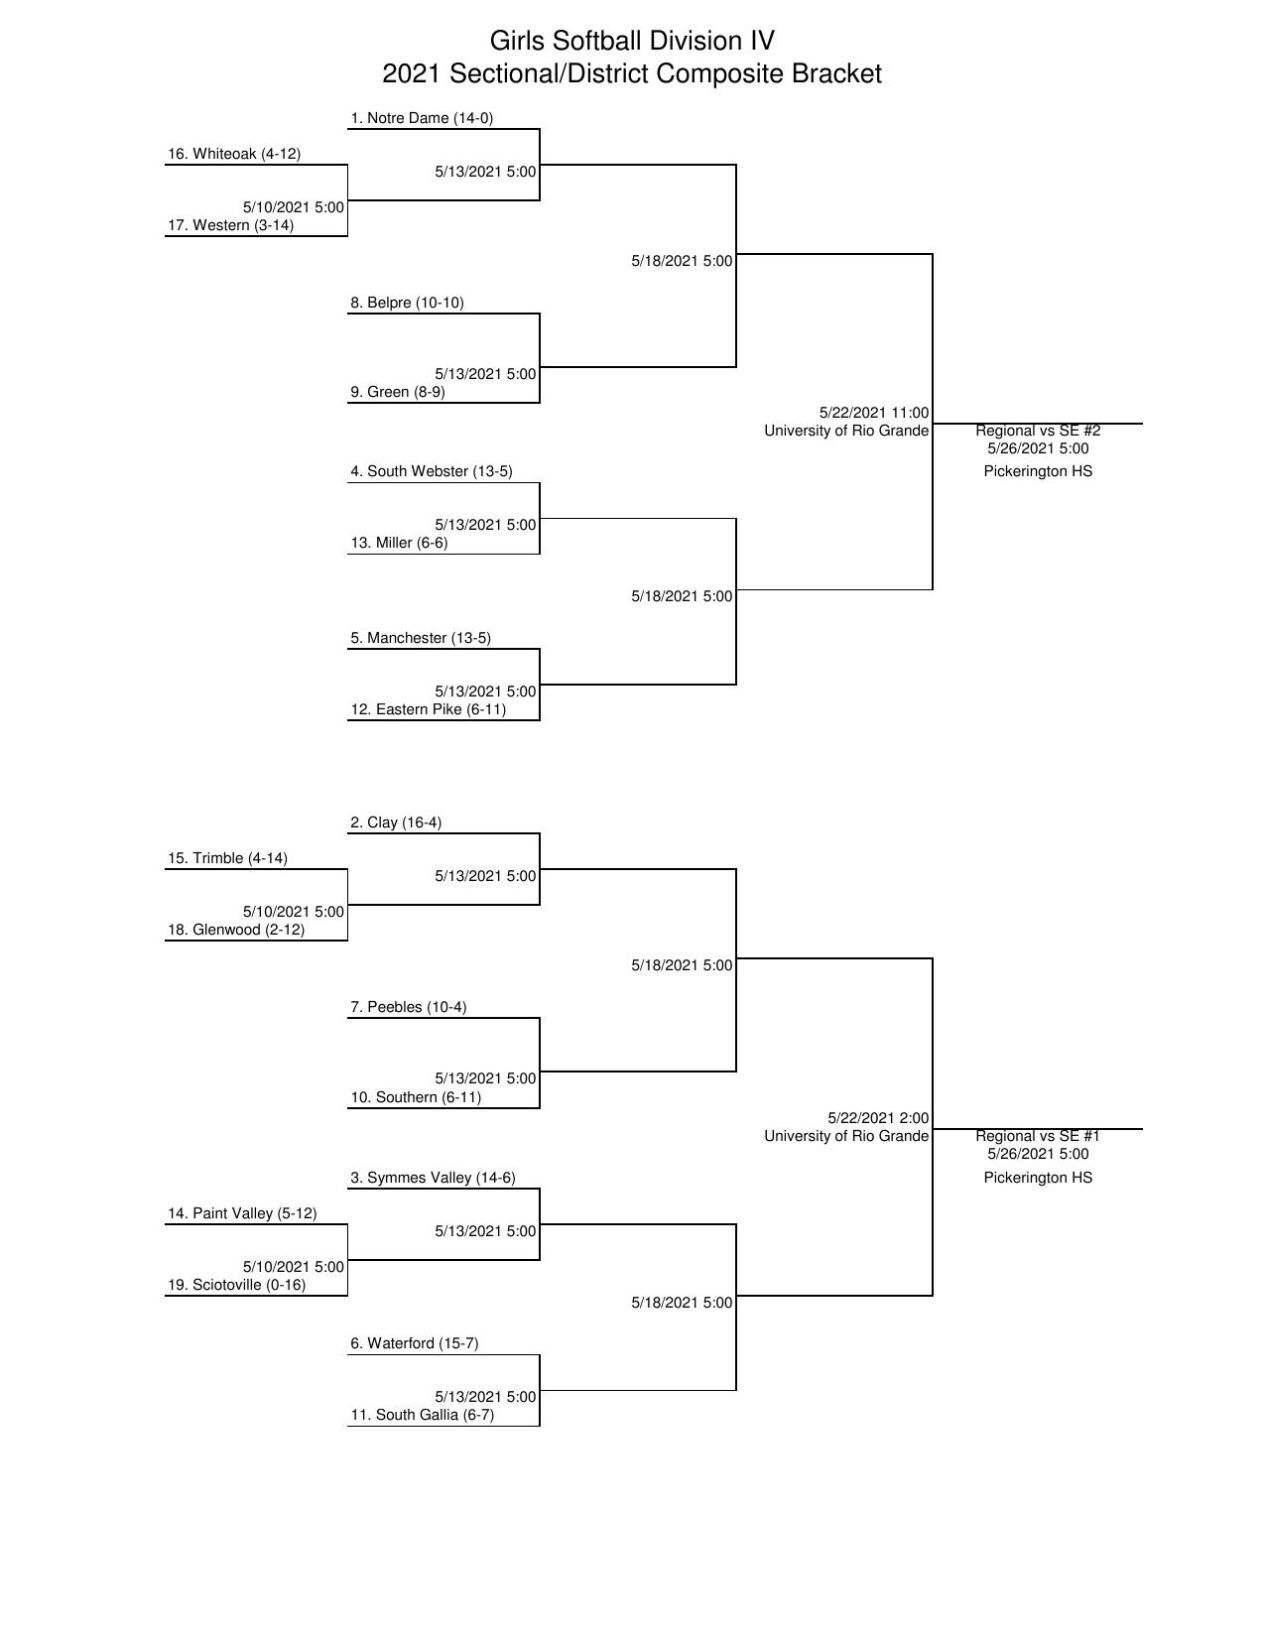 Girls Softball Division IV 2021 Sectional/District Composite Bracket